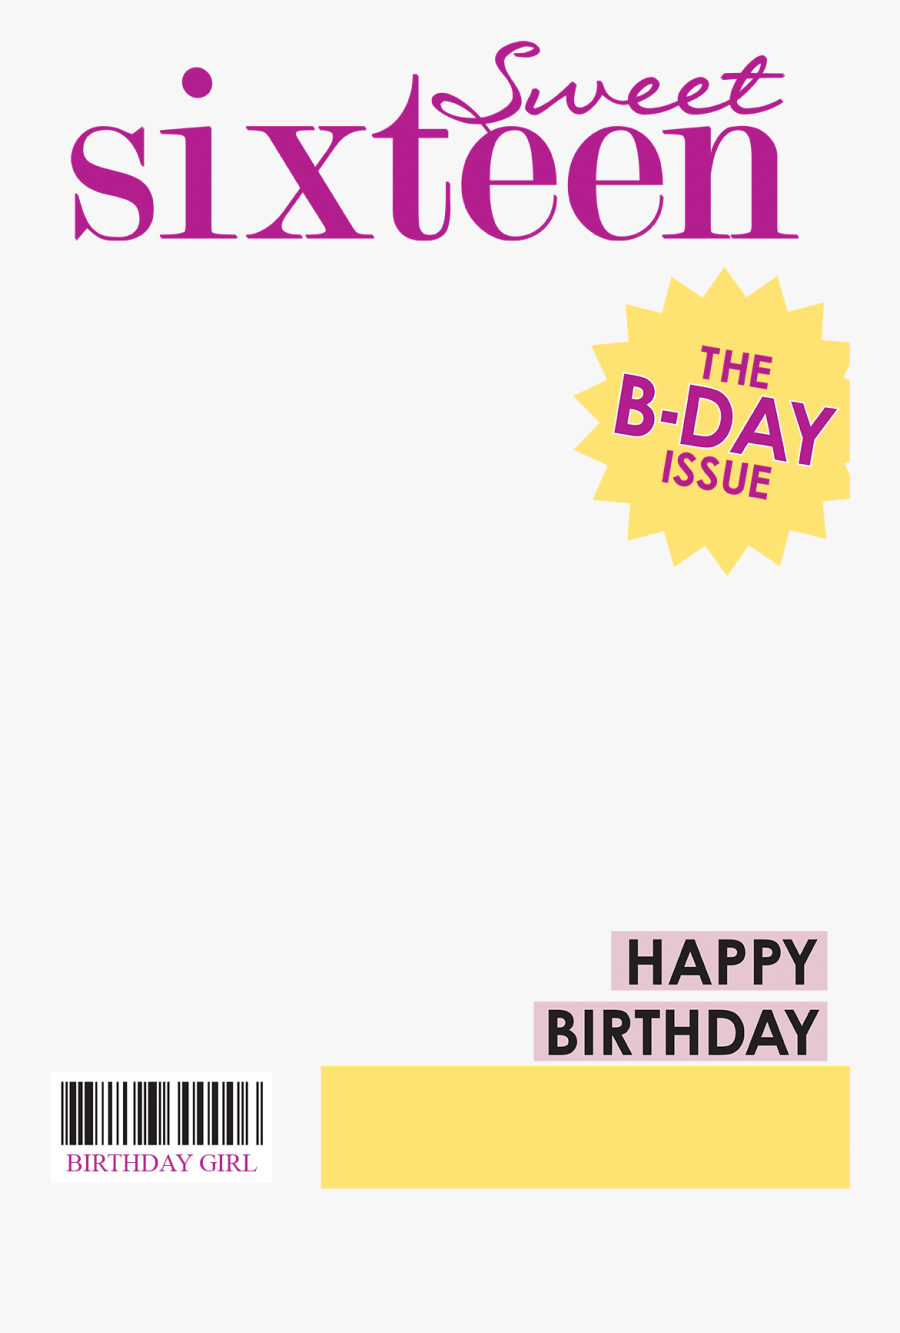 Transparent Pioneer Girl Clipart - Magazine Cover Sweet 16, Transparent Clipart